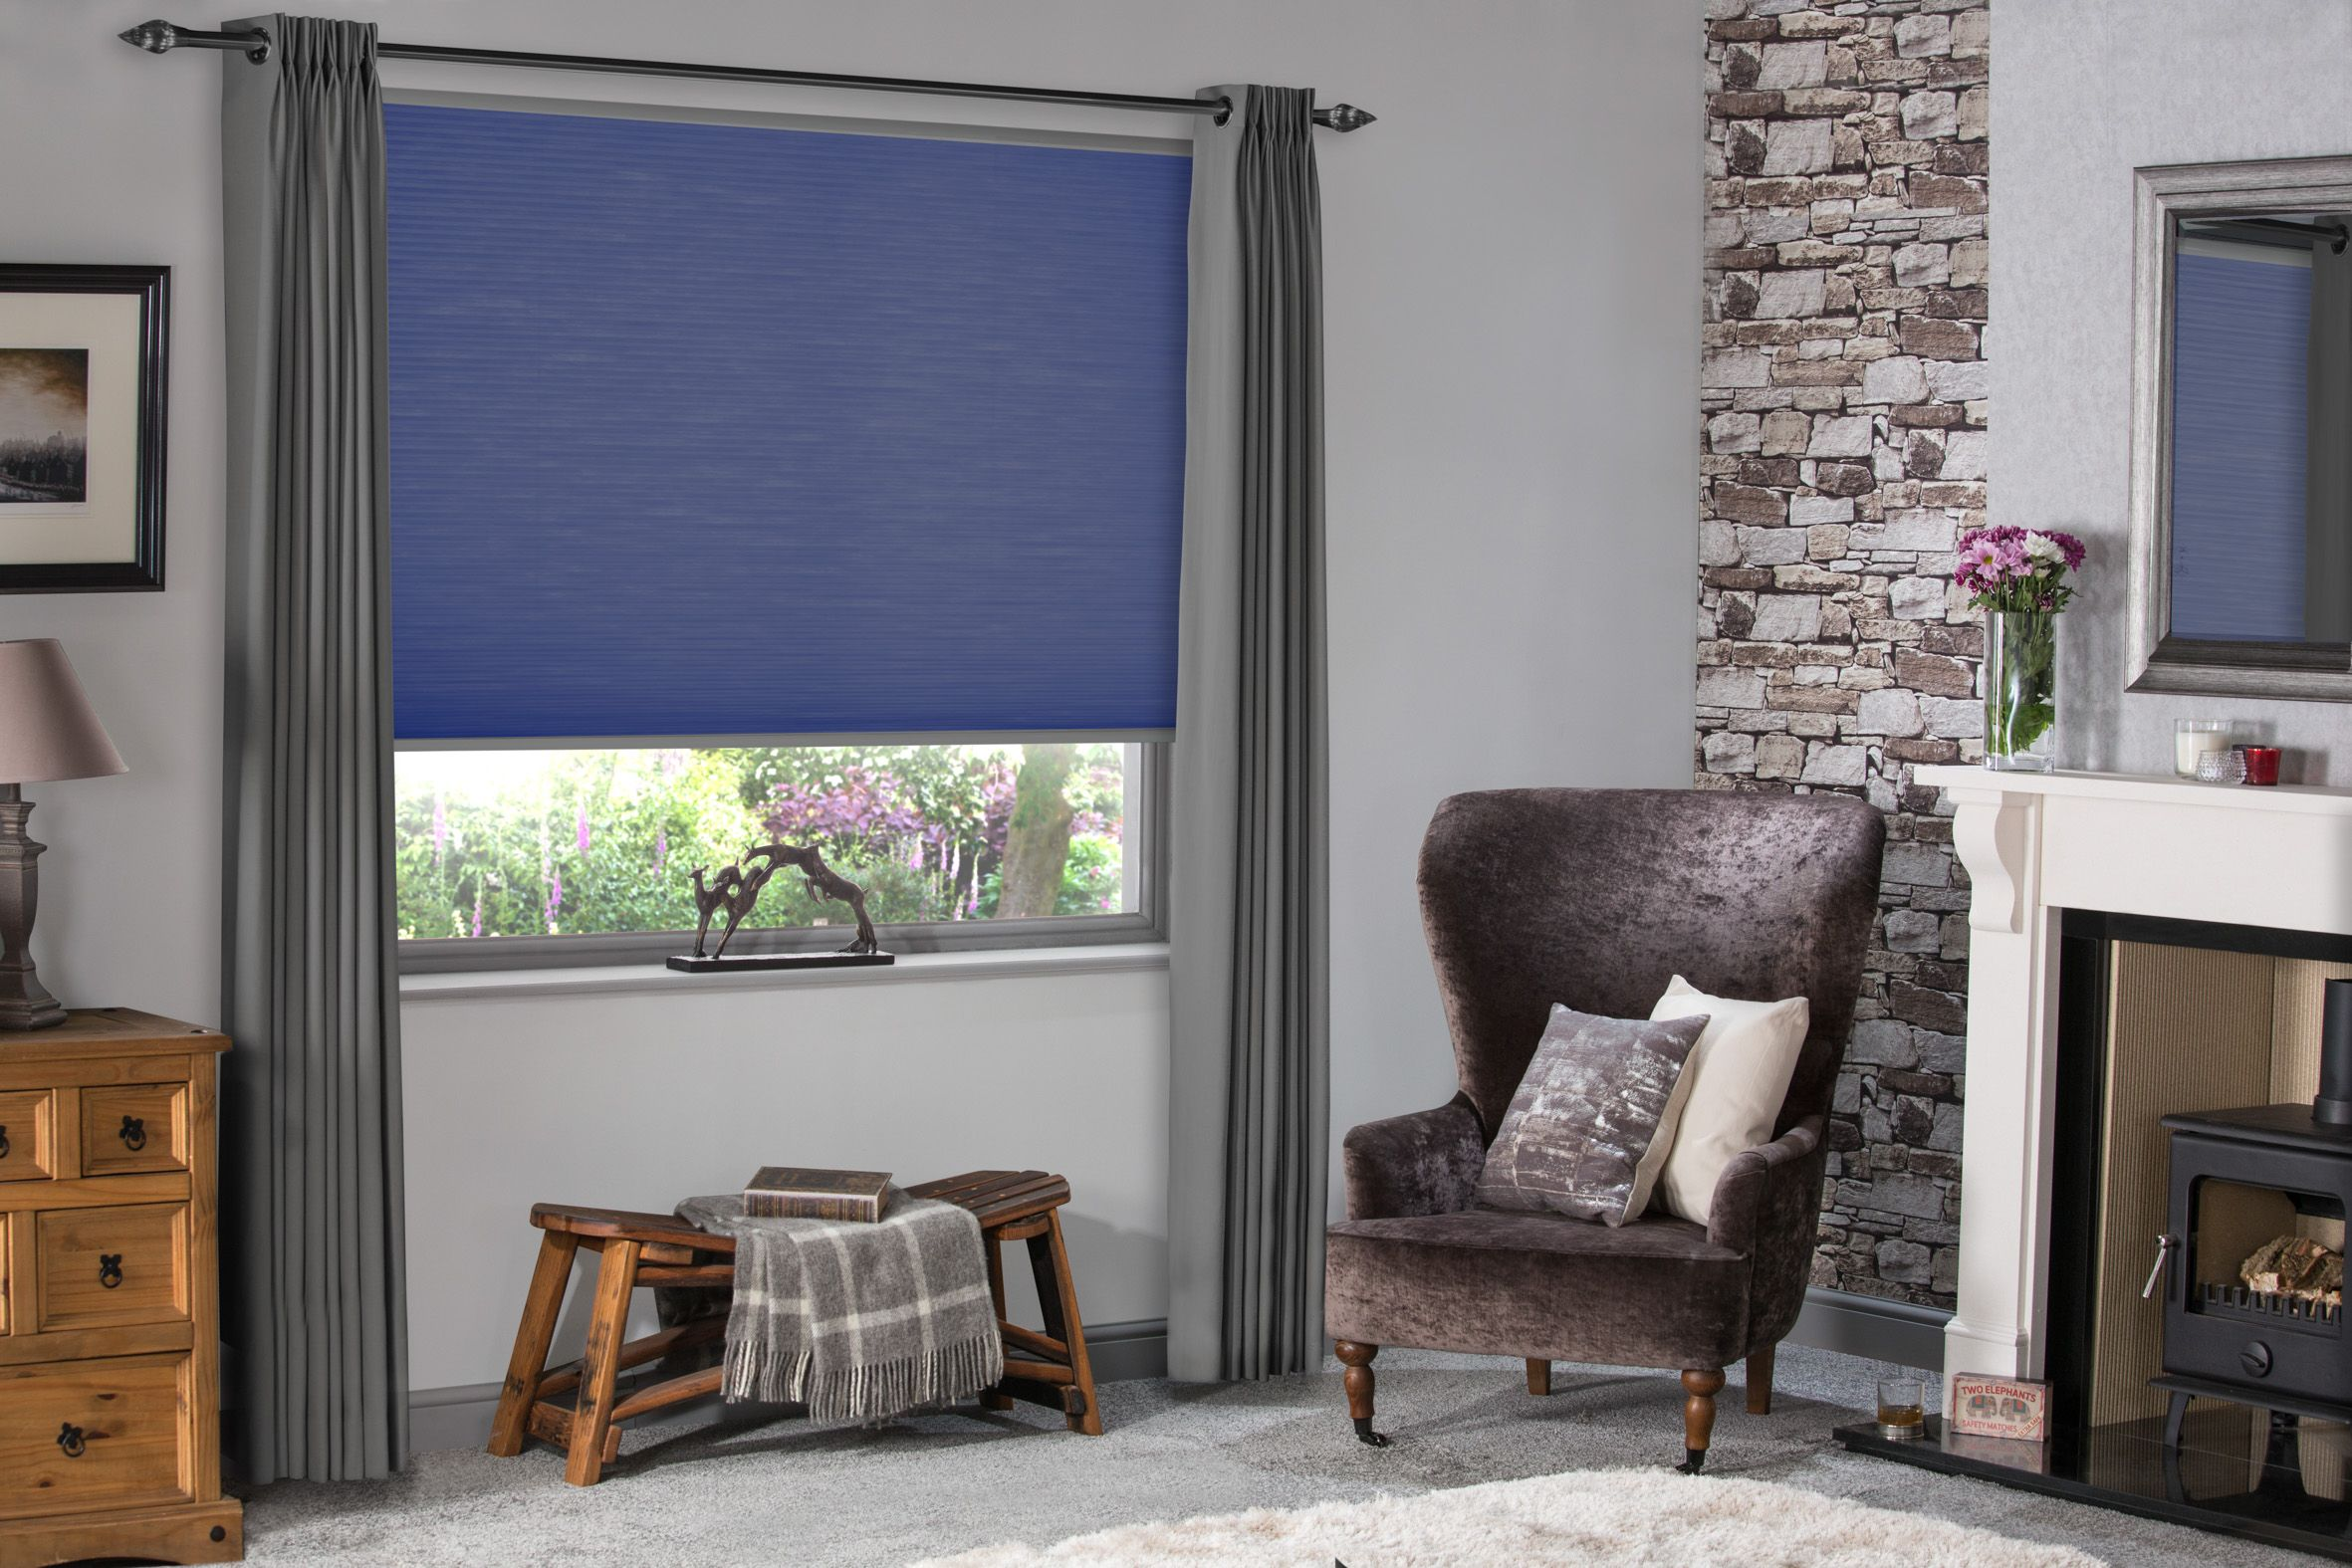 Living Room Blind Ideas Blue Blinds Energy Saving Pleated Hive